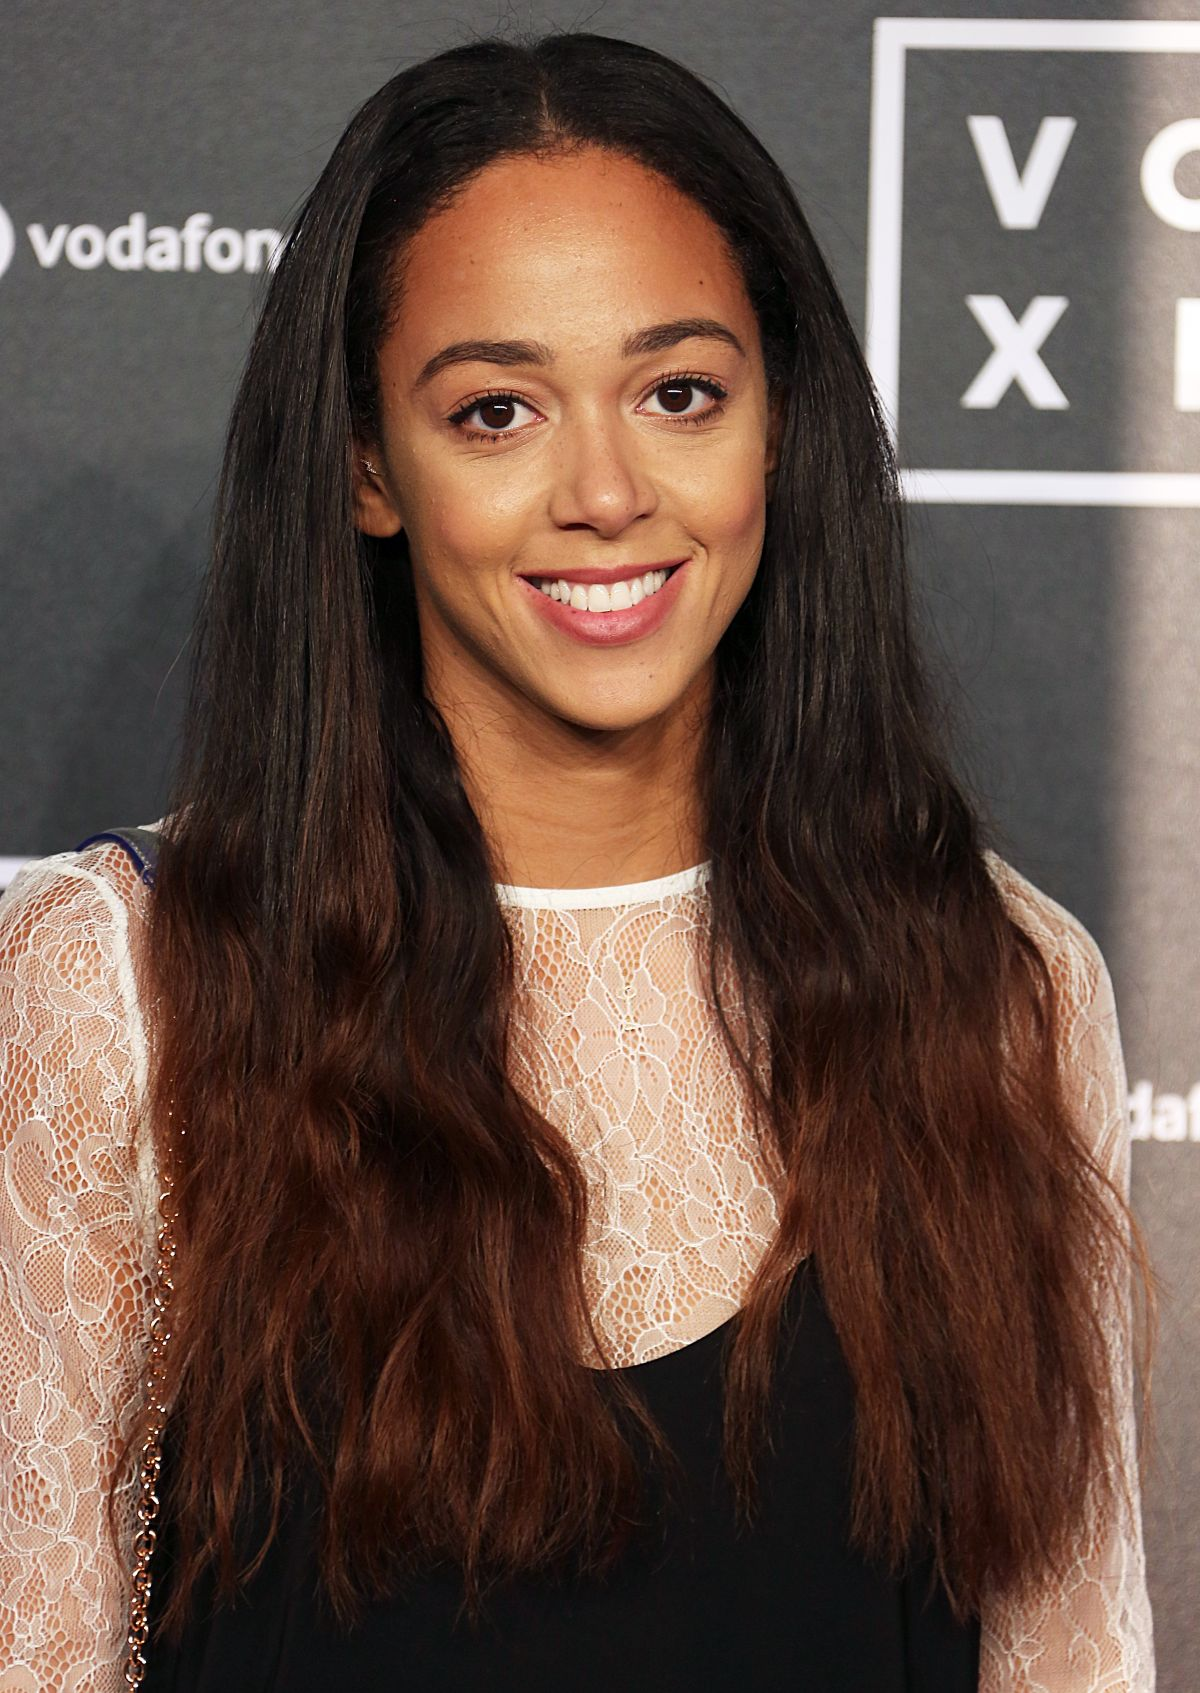 KATARINA JOHNSON-THOMPSON at Voxi Launch Party in London